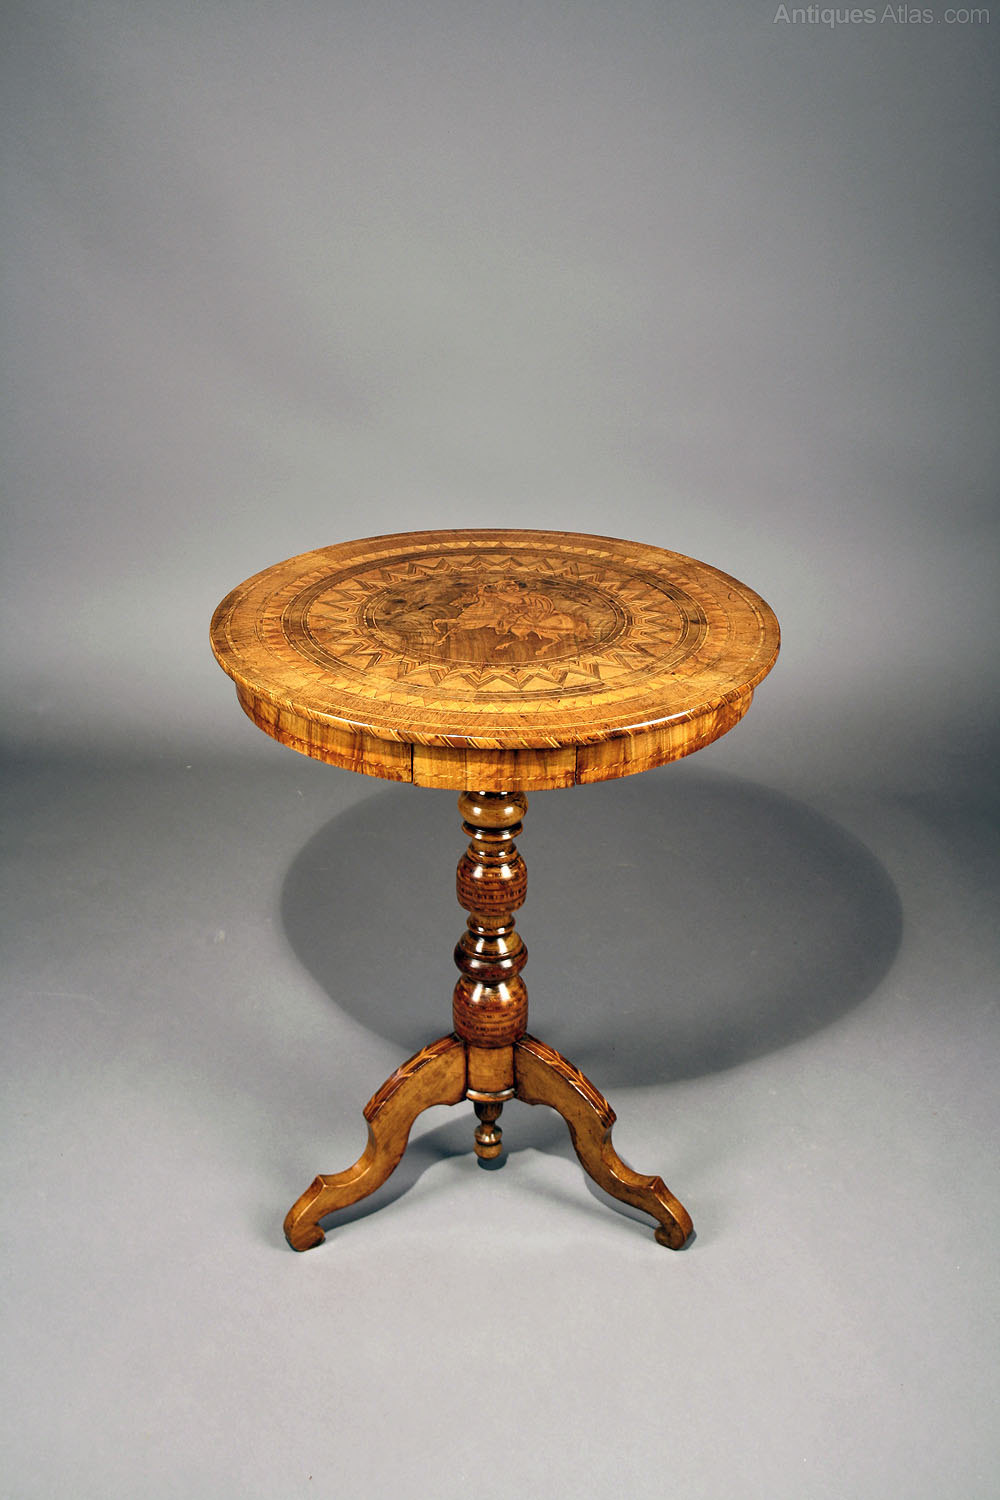 Italian Sorrento Inlaid Occasional Table Antiques Atlas